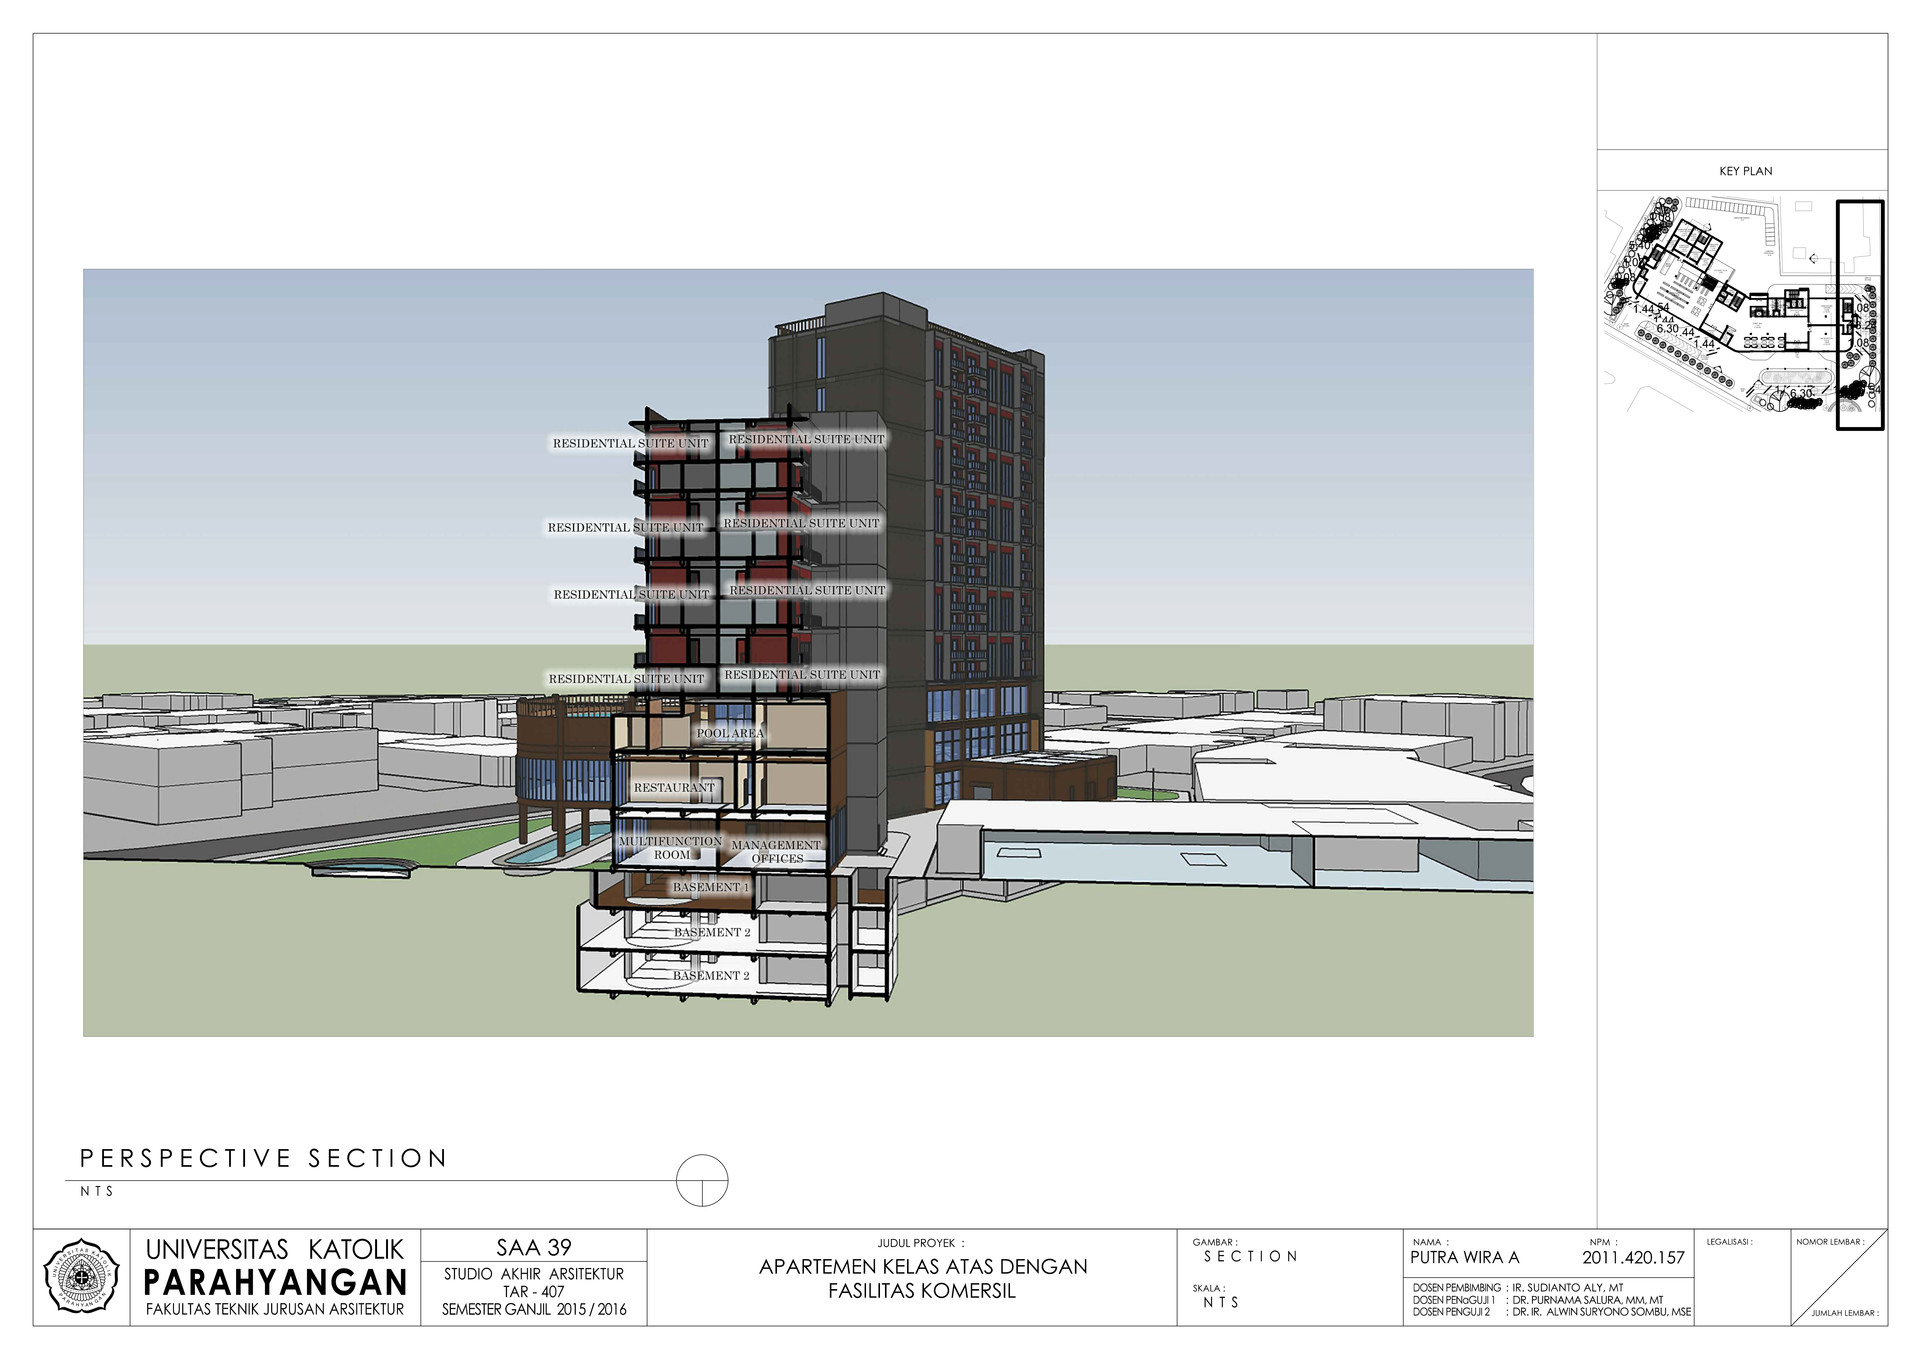 Putra wira adhiprajna 14 perspective section